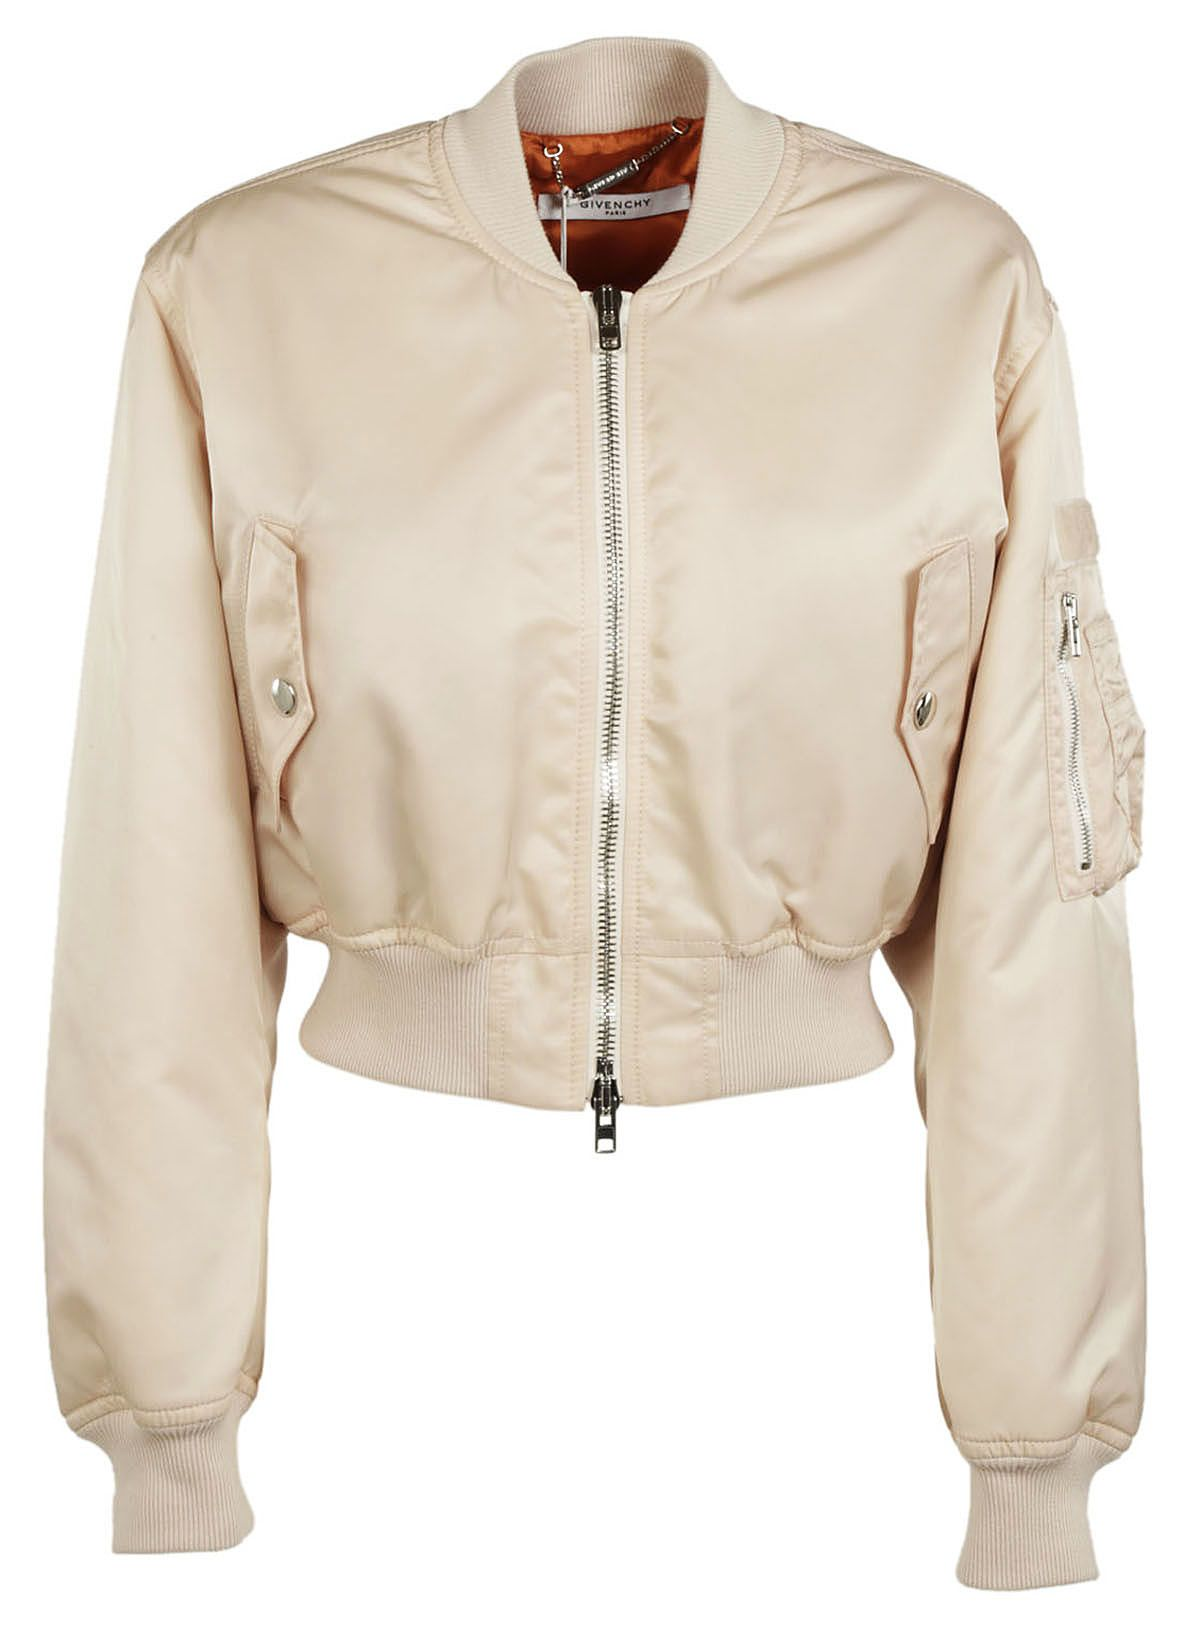 Givenchy Givenchy Cropped Bomber